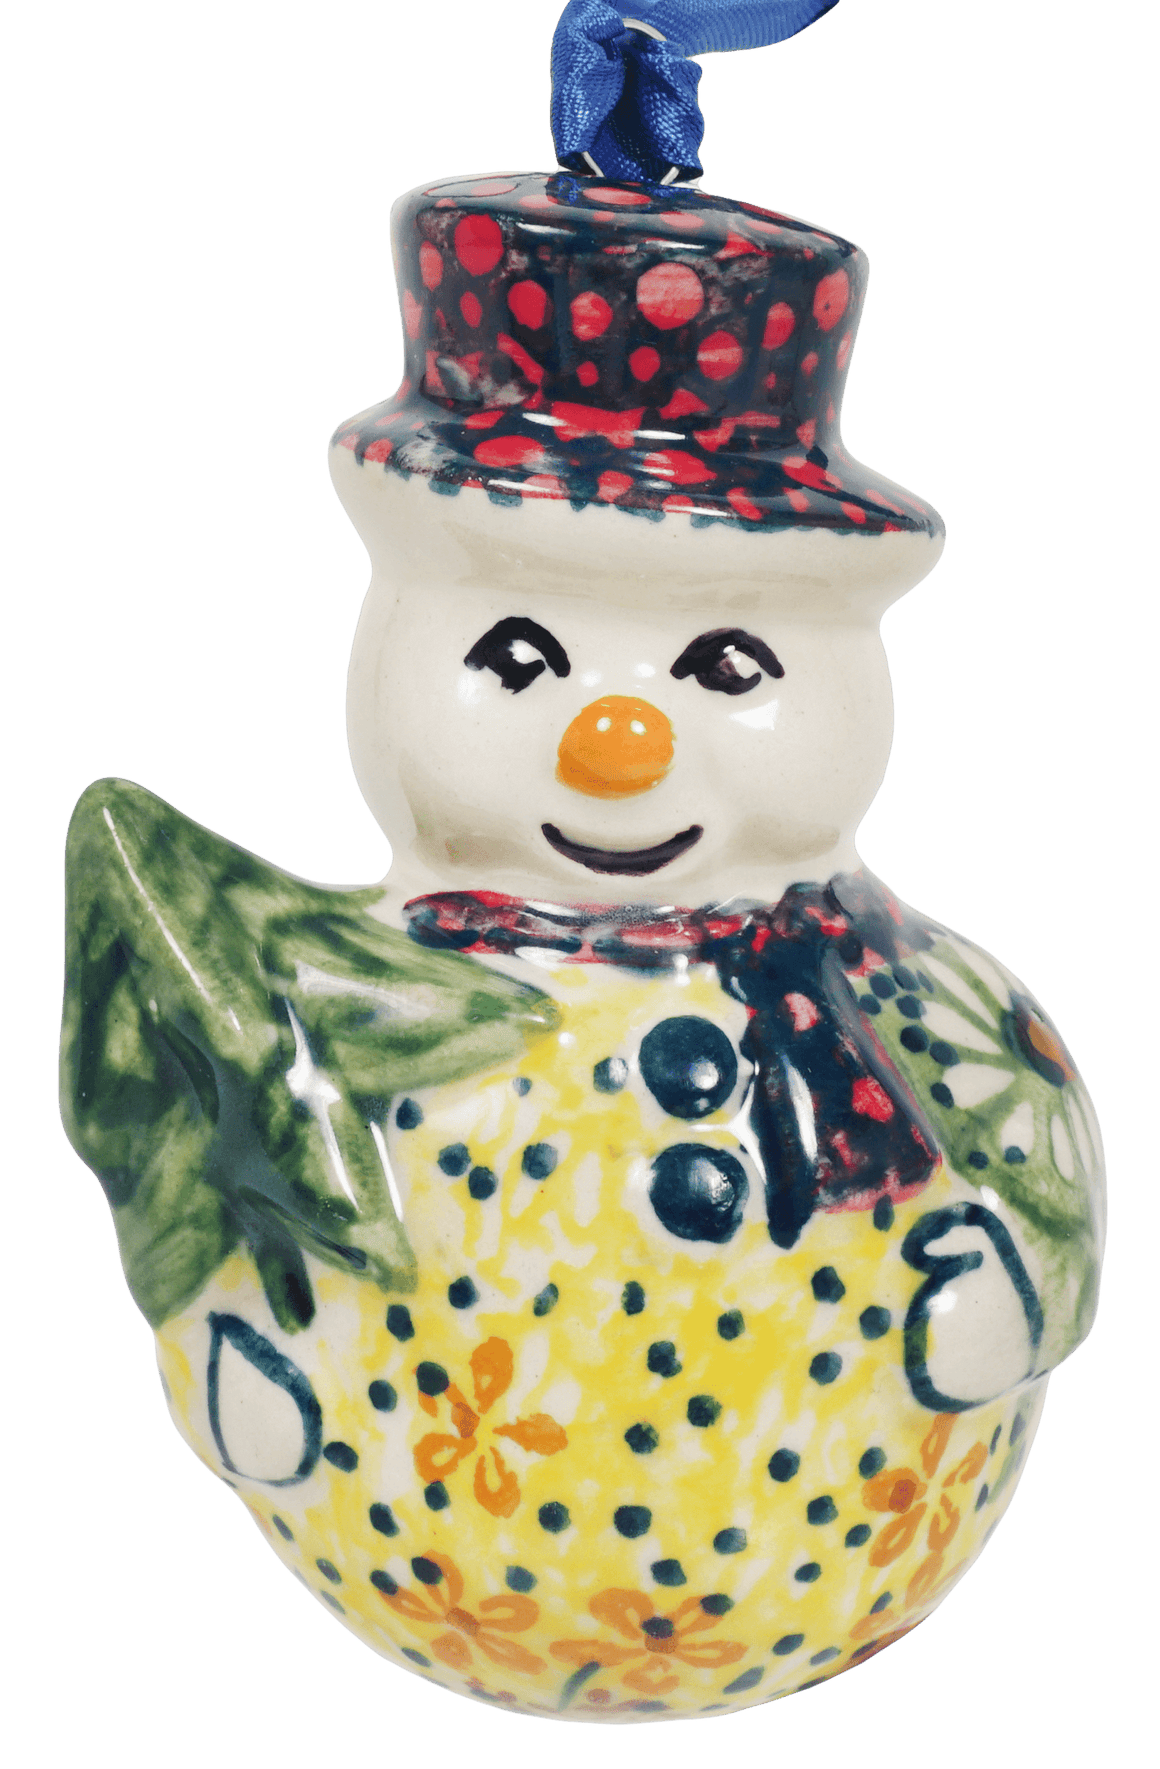 Snowman Ornament (Sunshine Grotto)